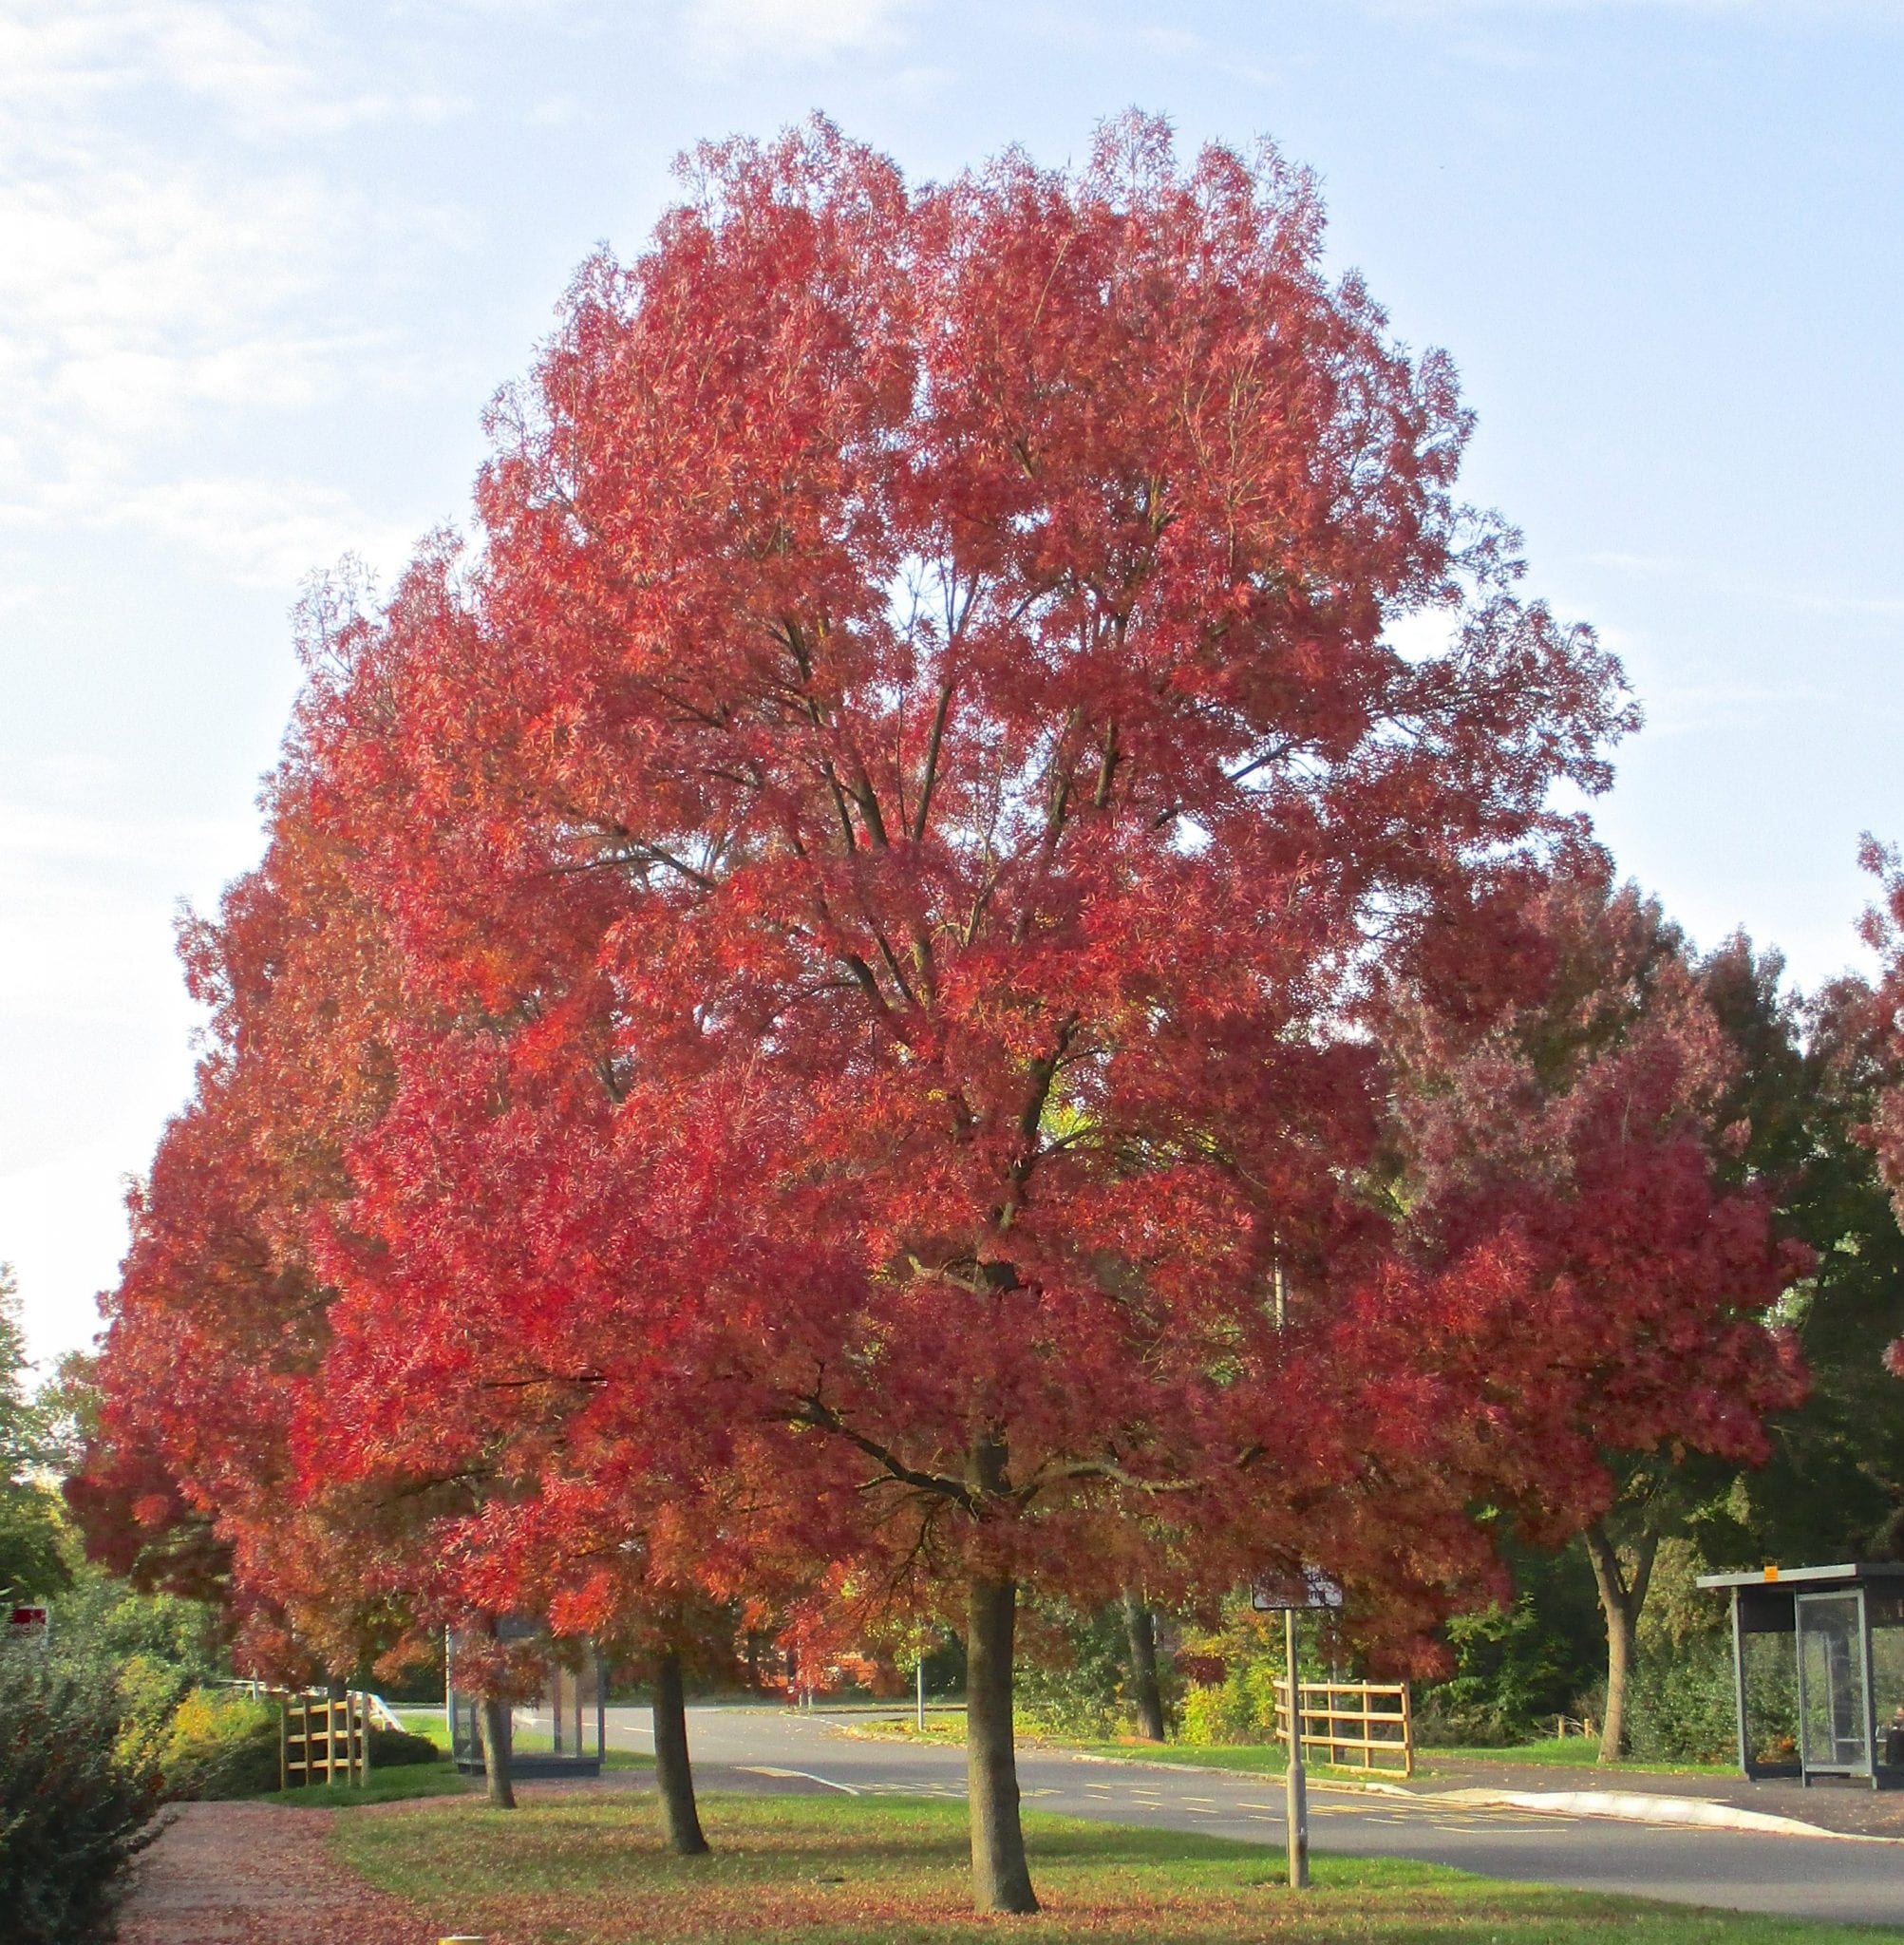 Contemporary On Where It Isplanted Claret Ash Is Now Very Common Its Spectacular Autumn Produced When Its Green Leavesturn Red Trees Parks Autumn Tree Guide Uk houzz-03 Autumn Purple Ash